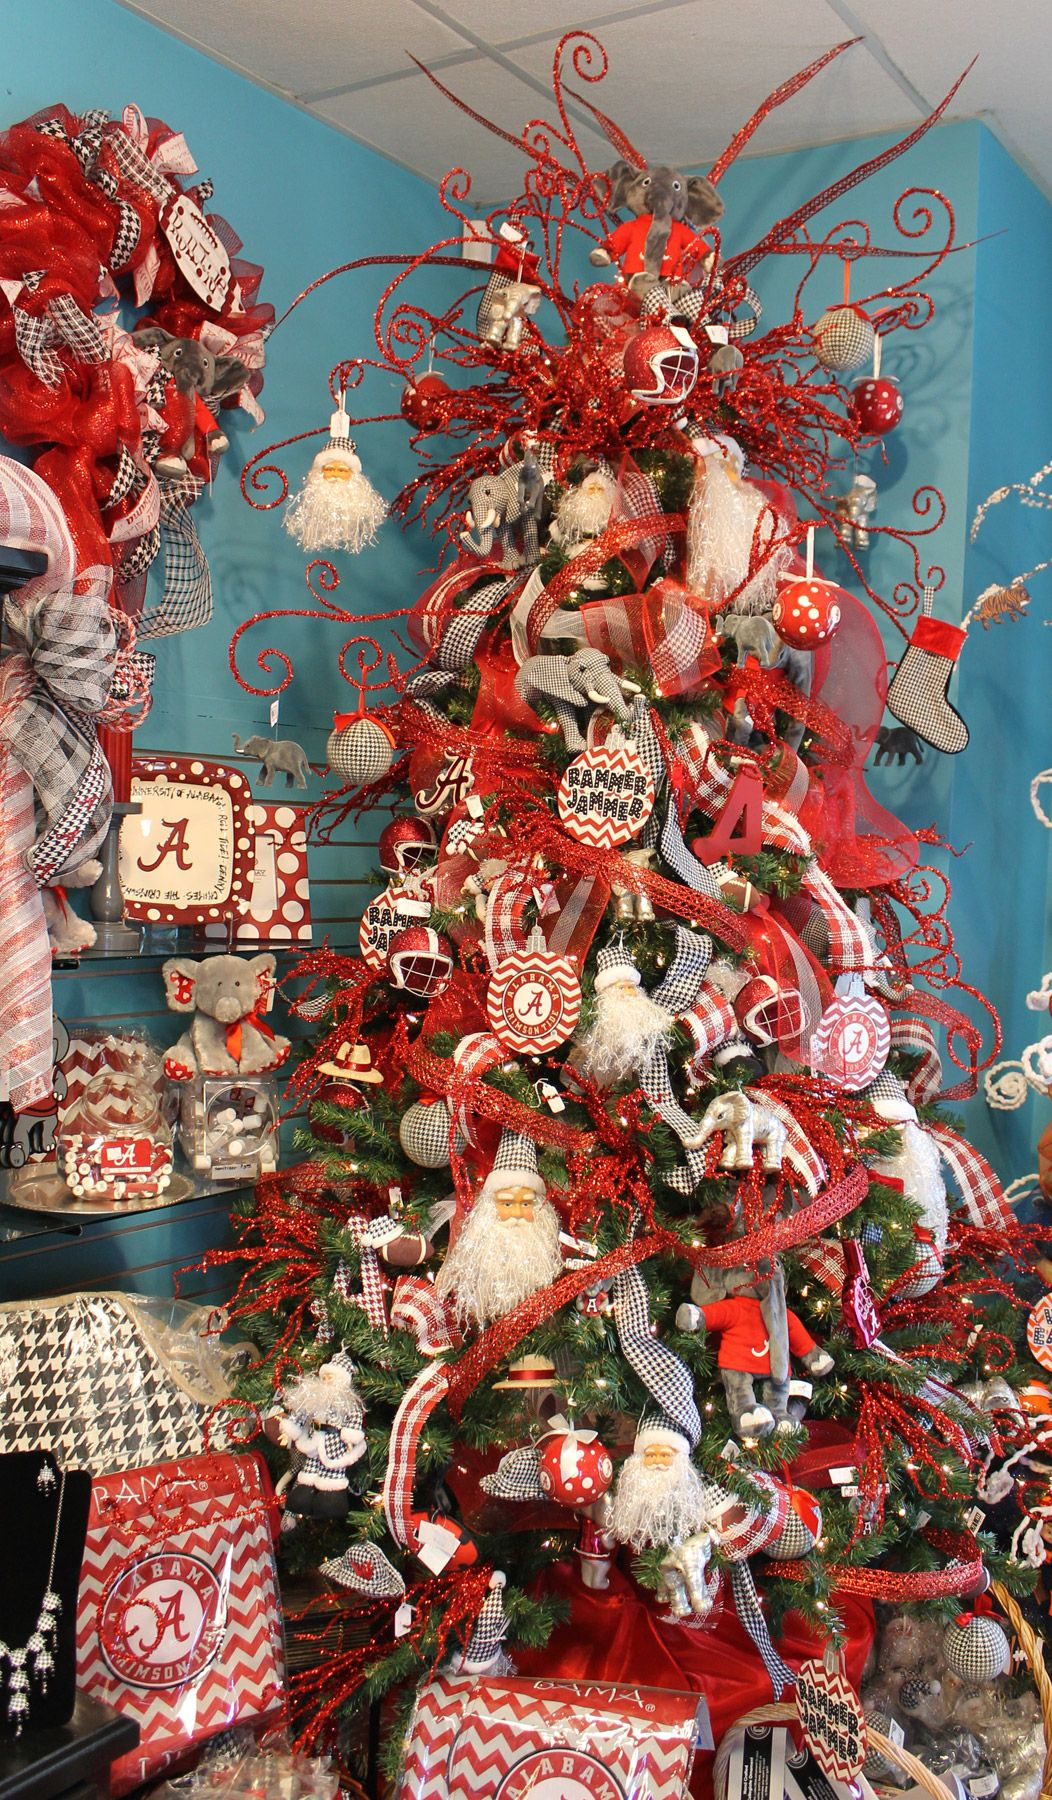 Roll Tide RollChristmas tree and gift ware alabama football